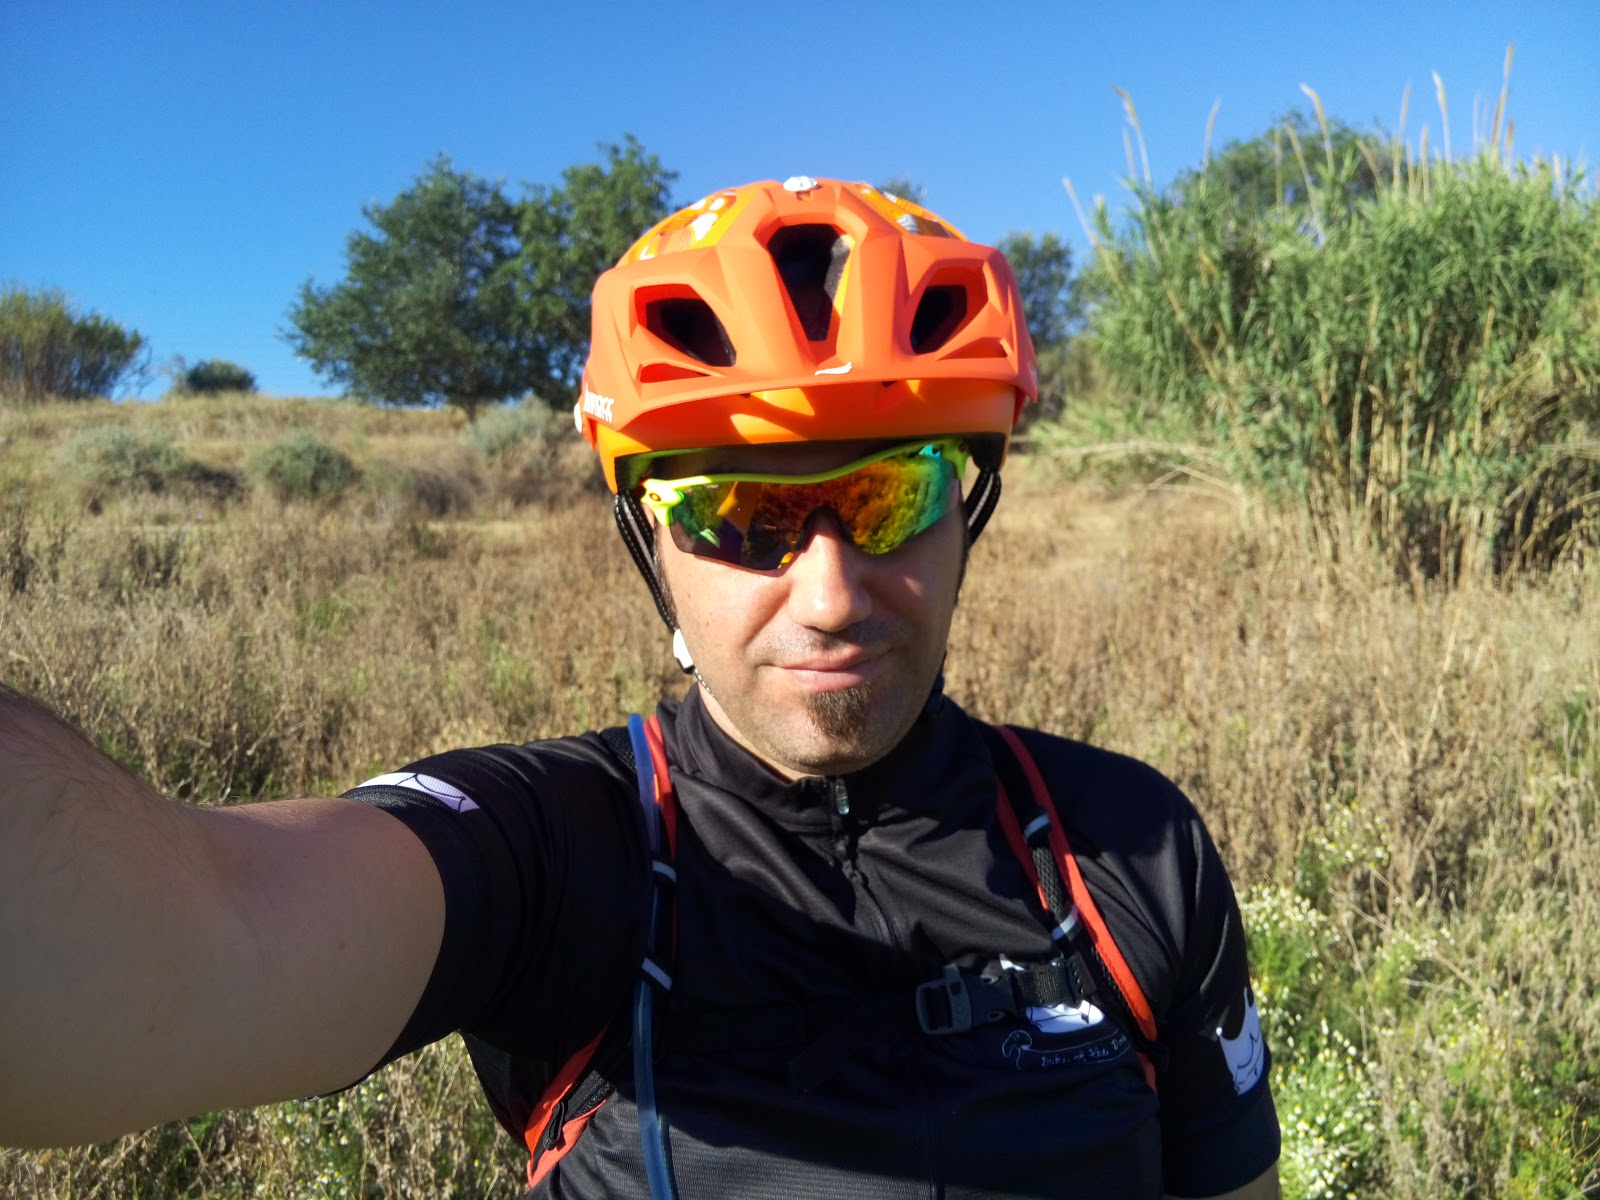 What are velodrome cycling helmets made out of and what features/special thins do they have?